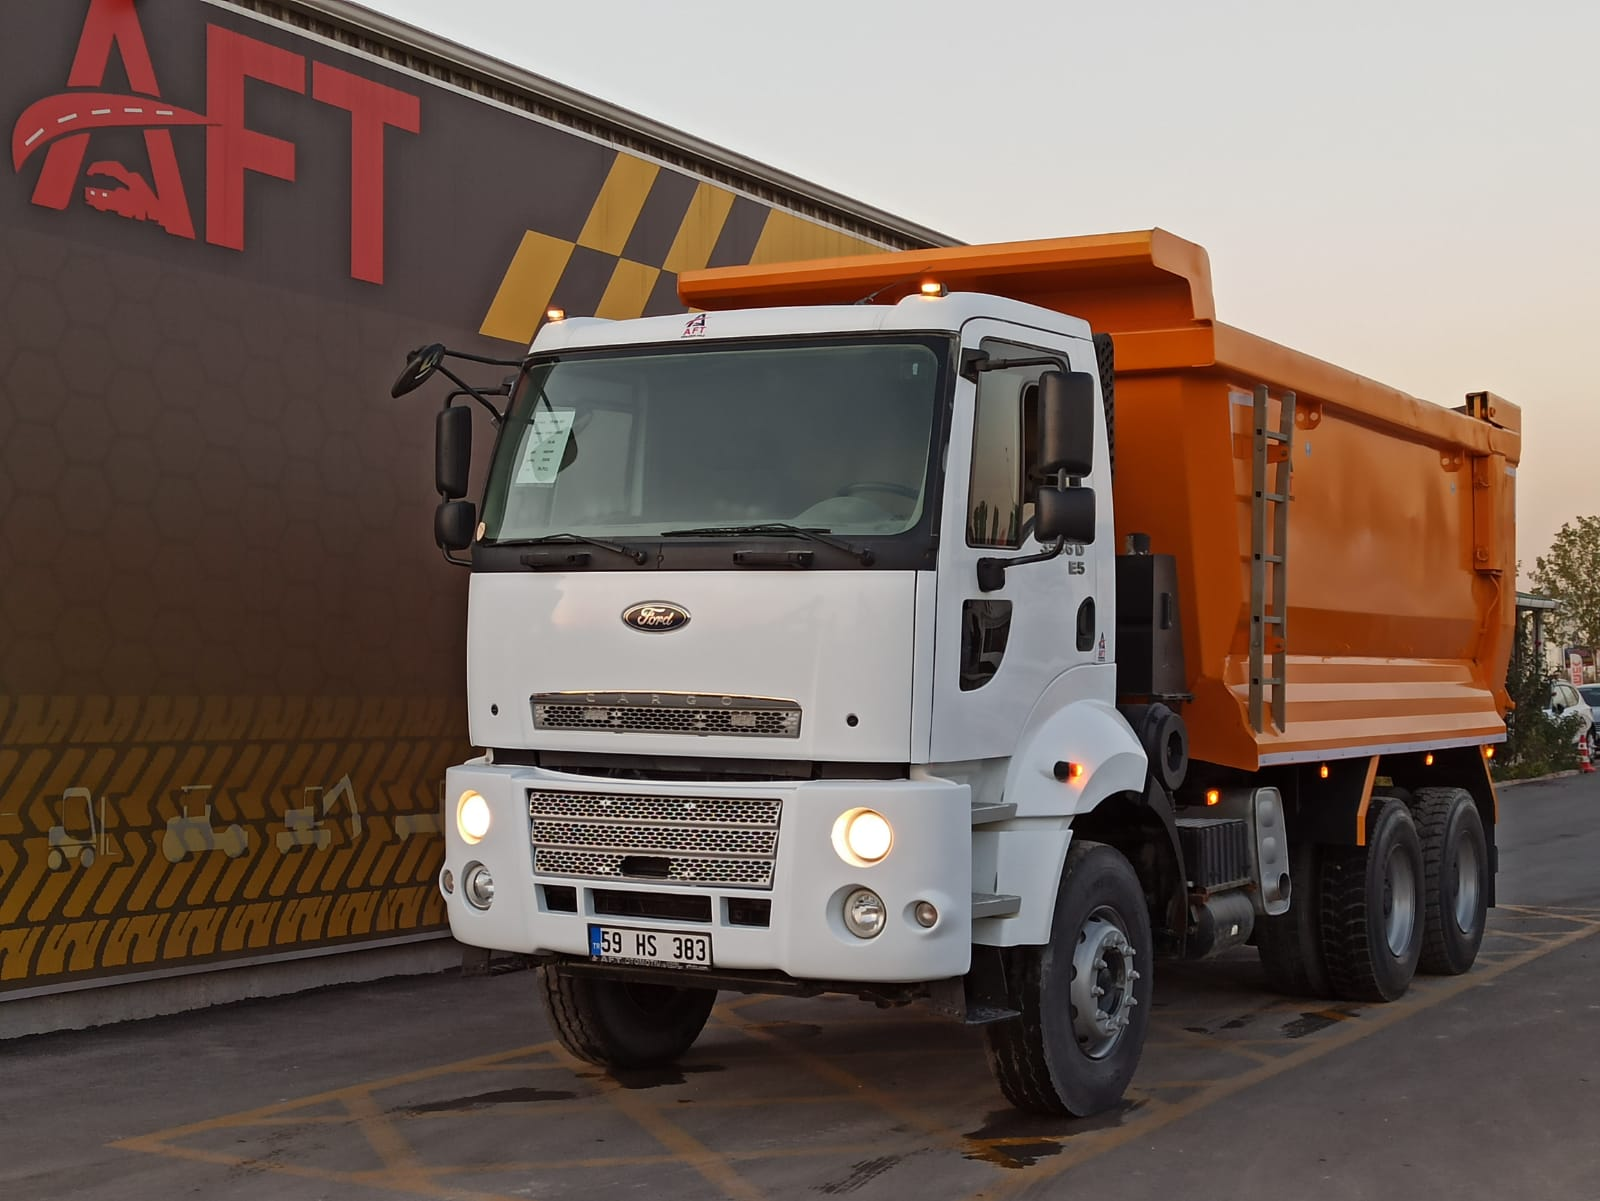 2014 MODEL FORD CARGO 3536 D E5 AC HARDOX TIPPER